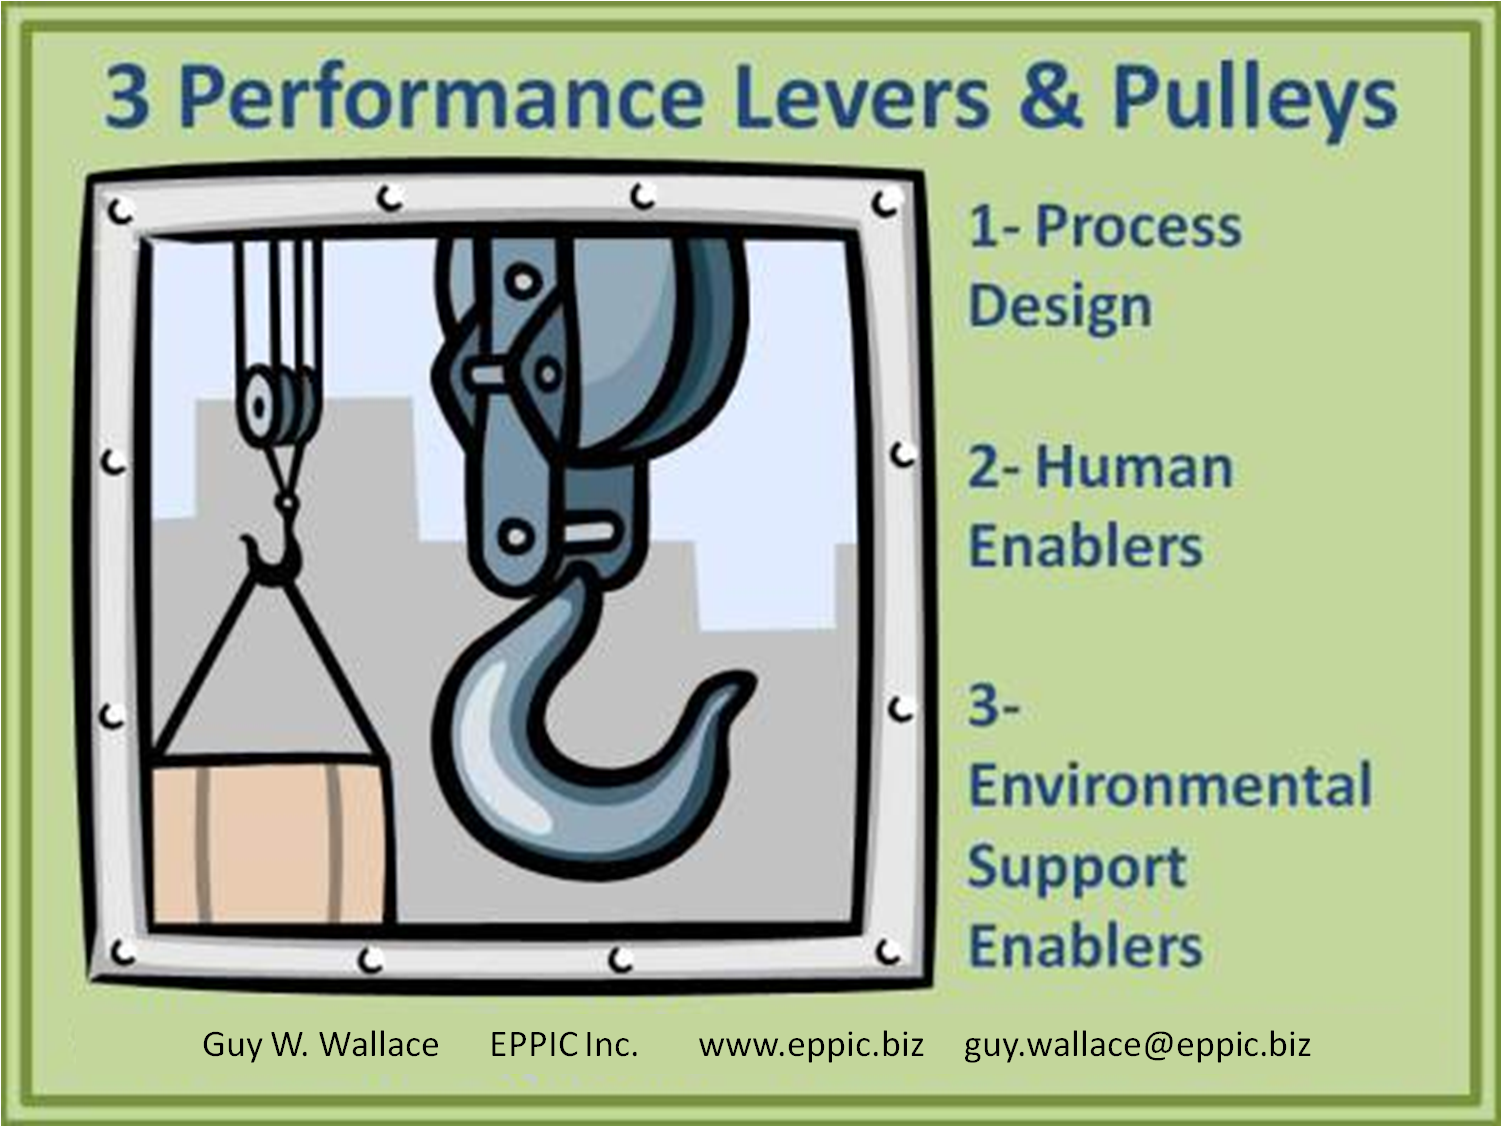 The 3 Enterprise Process Performance Levers of EPPI